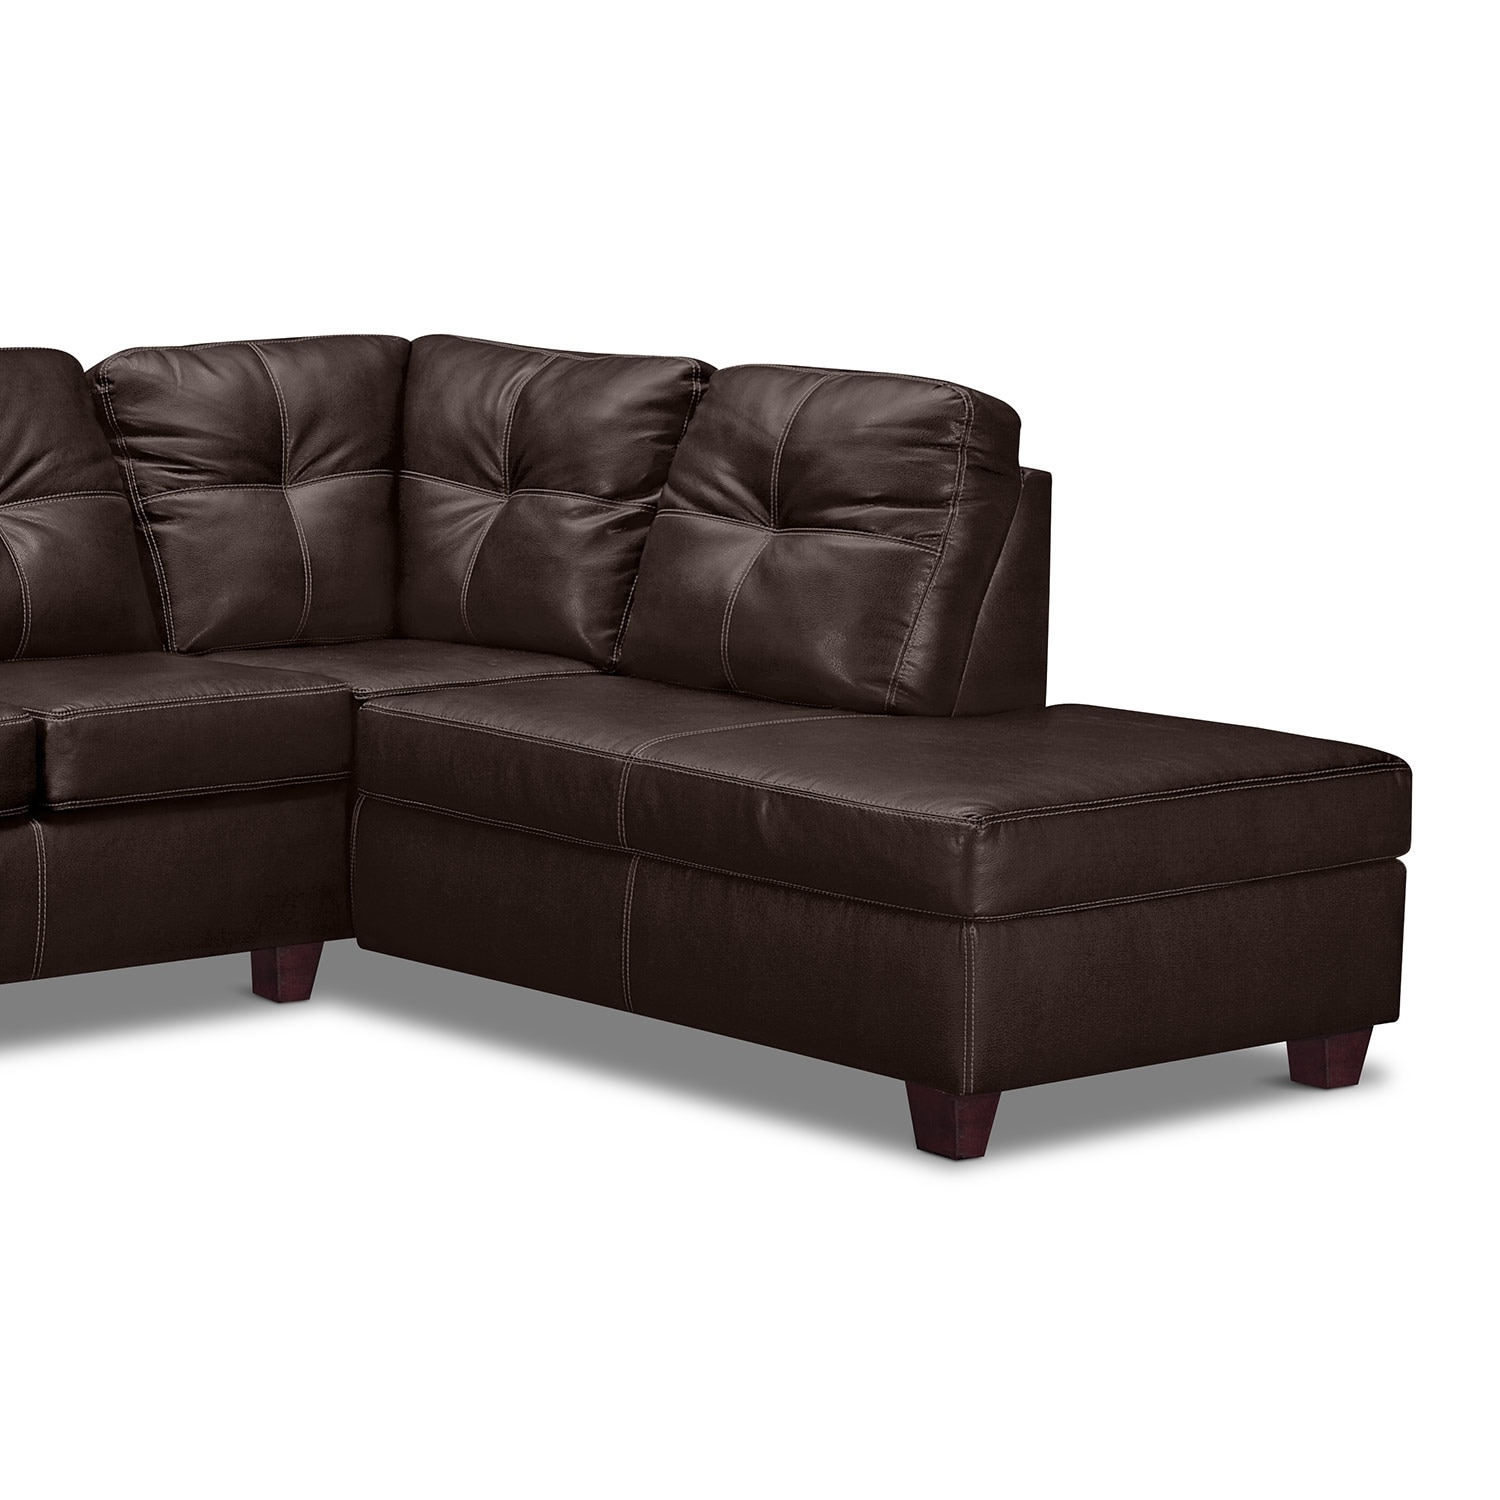 Ricardo 2 piece sectional with right facing chaise brown for 2 piece sectional sofa with chaise